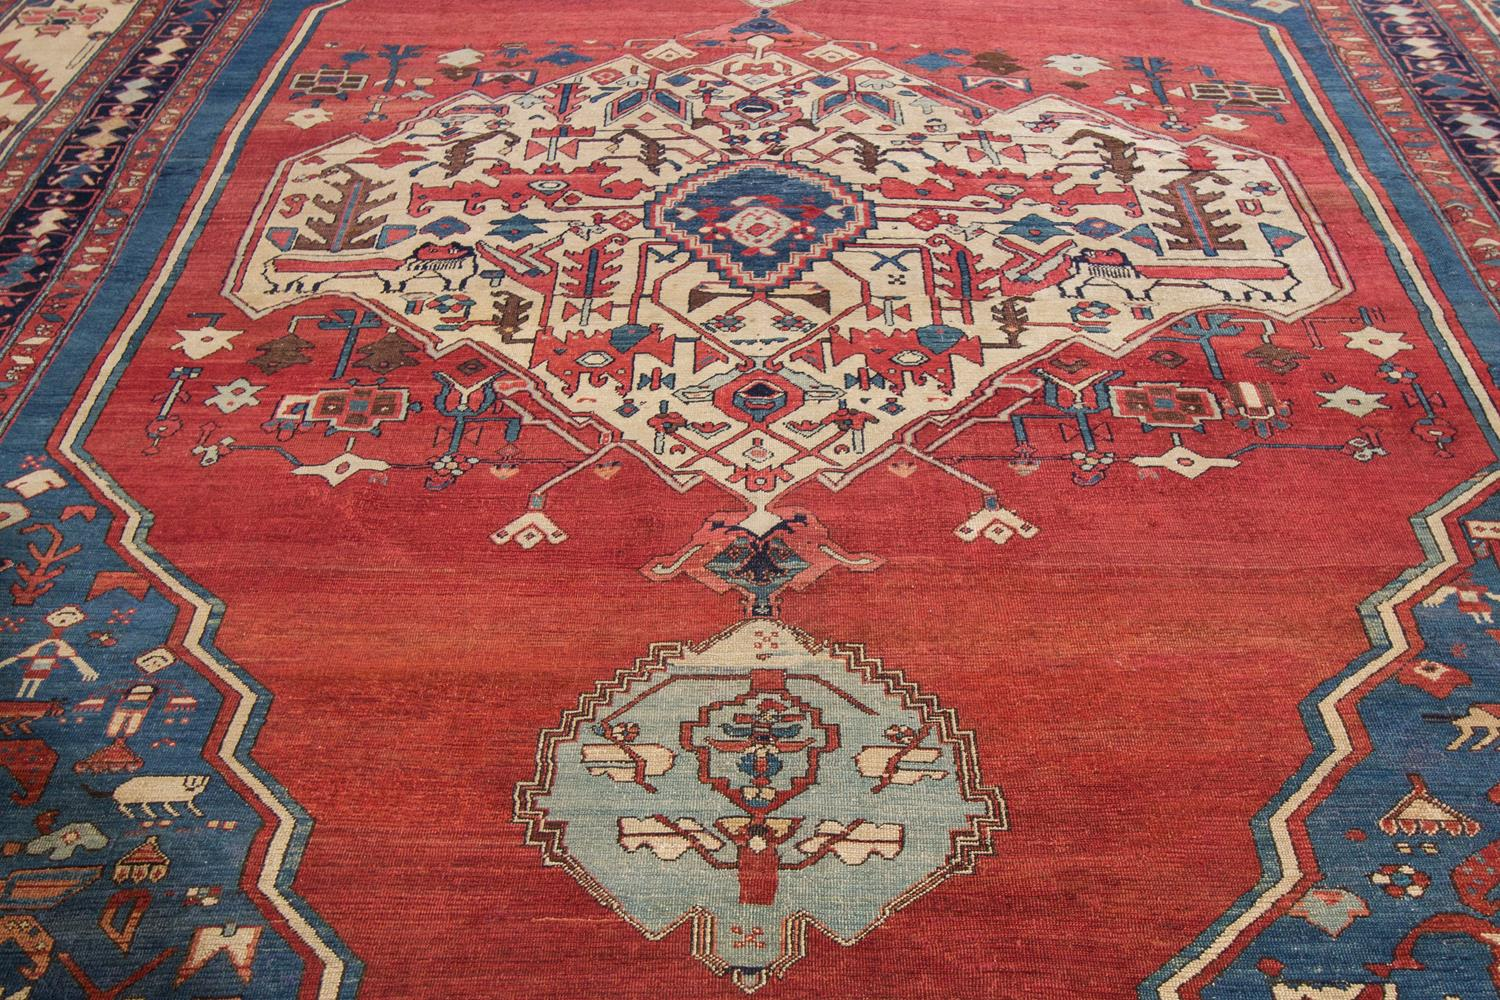 19th Century Antique Serapi Rug, 13x20